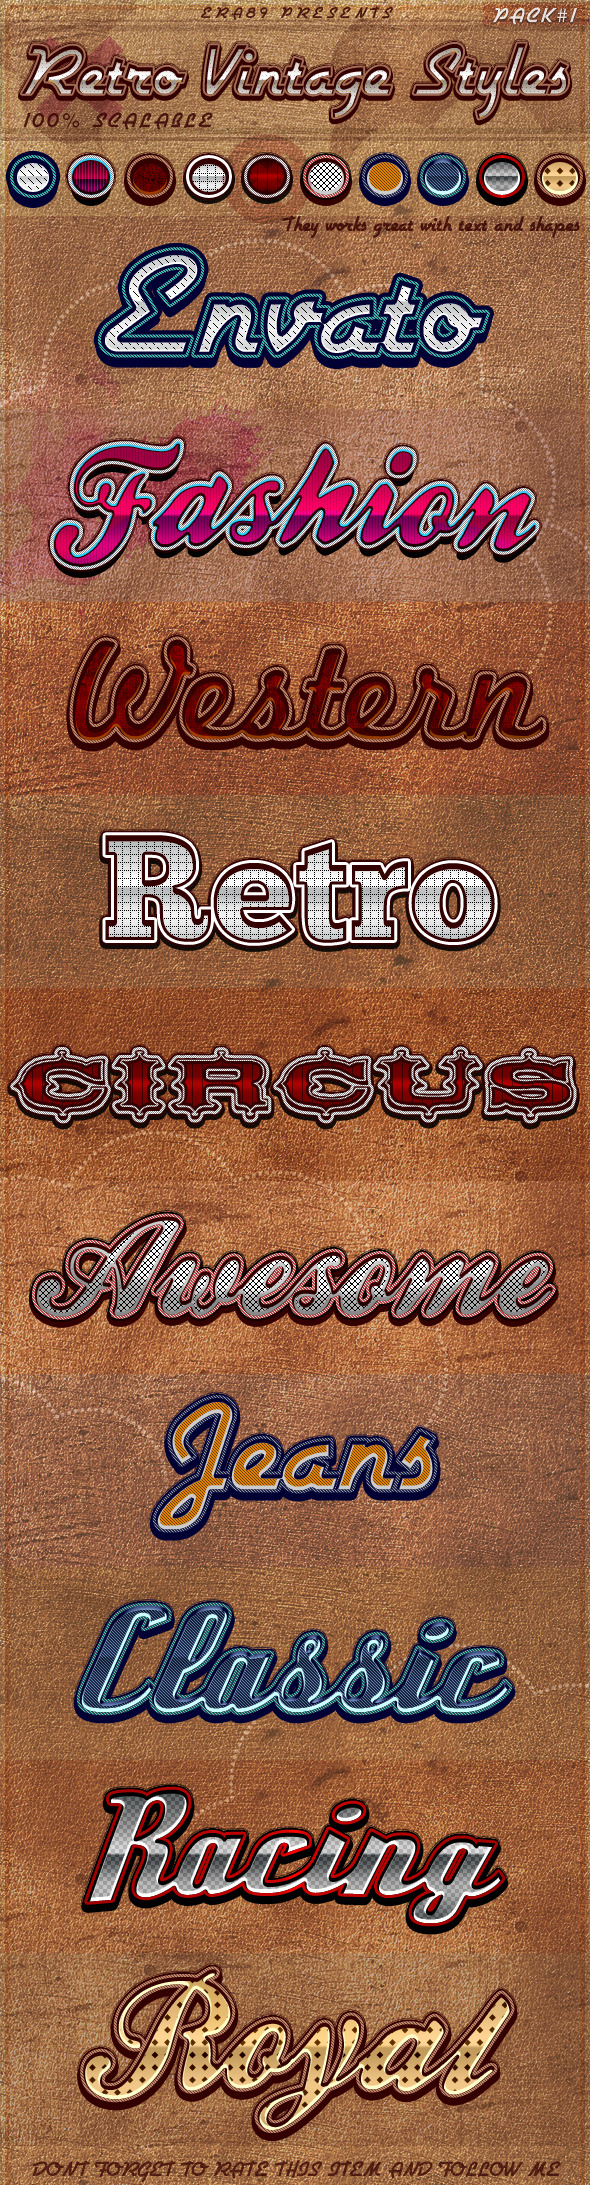 Retro Vintage Styles - Text Effects Styles